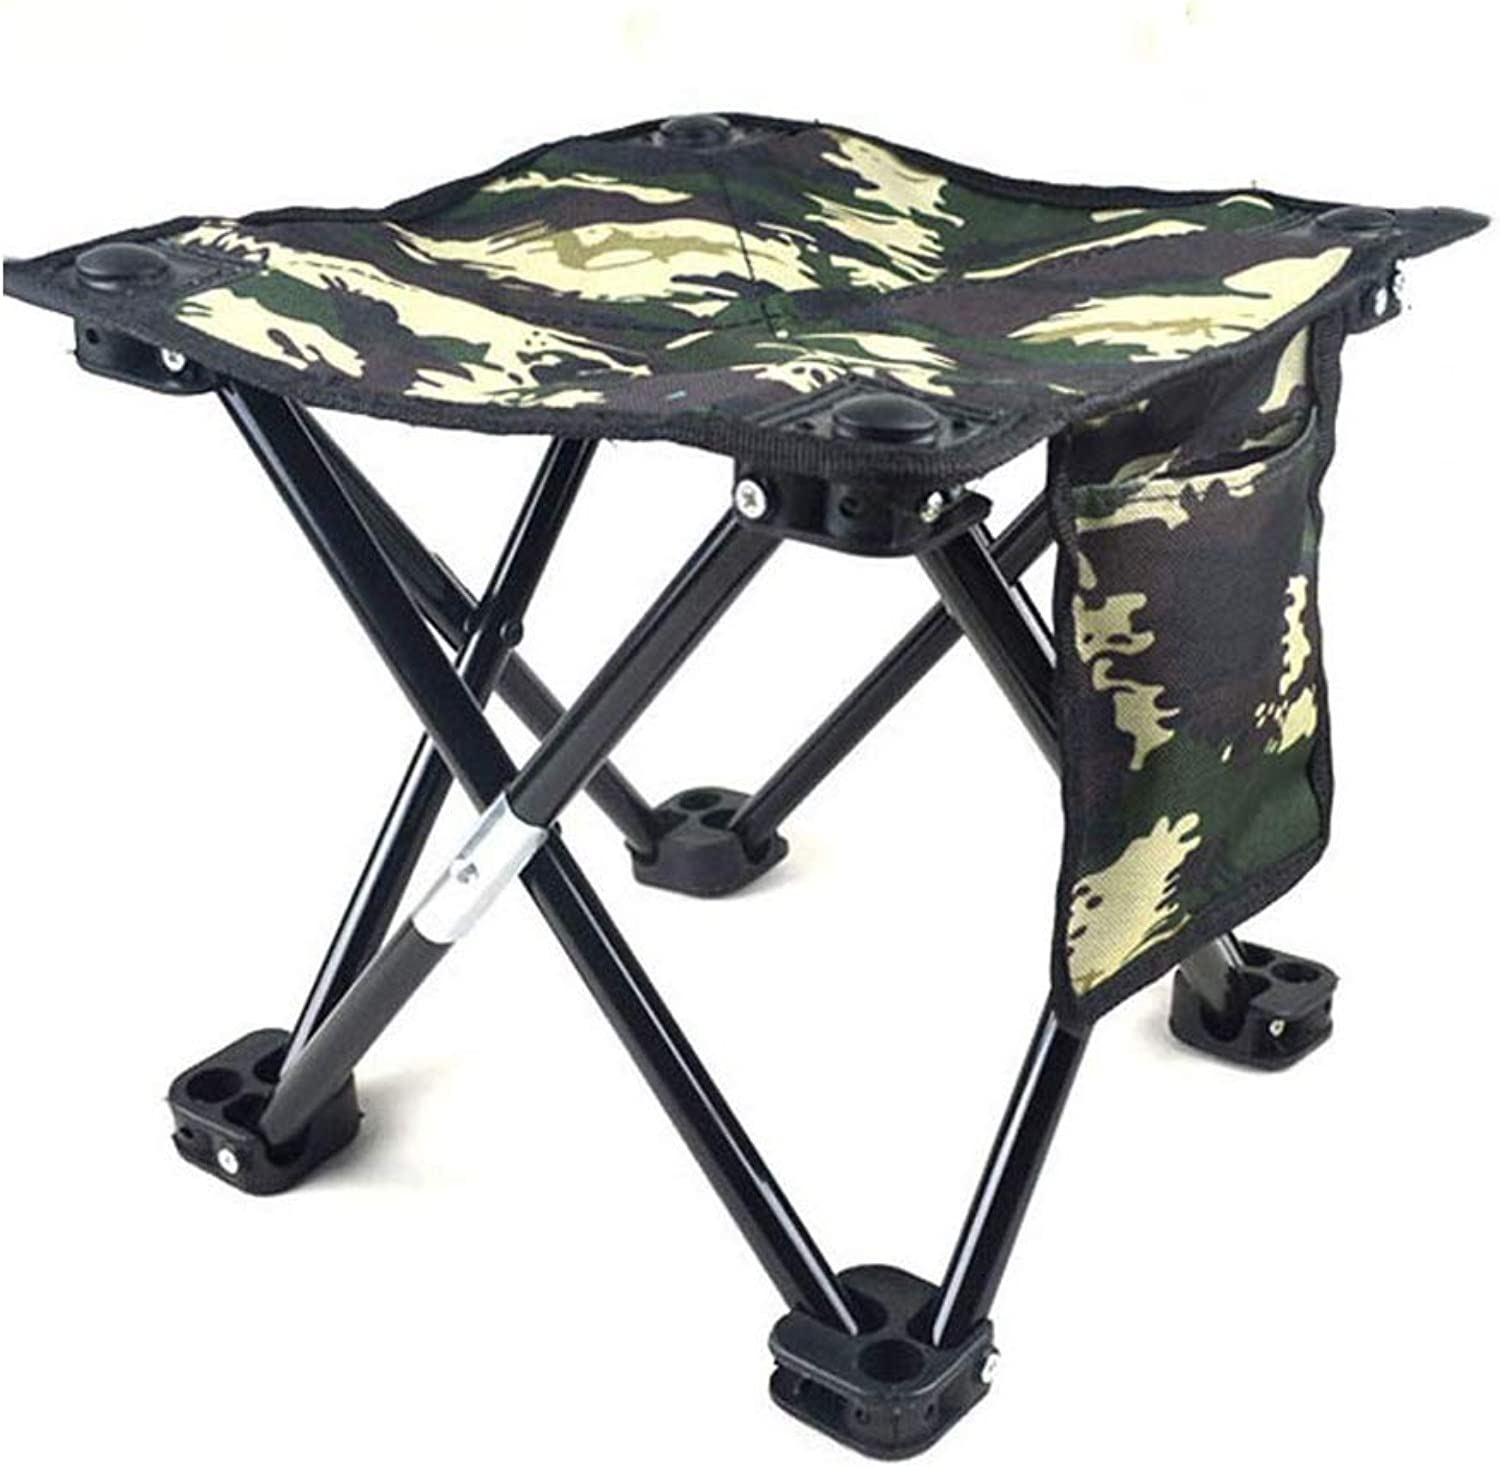 Folding Chair, Camping Outdoor Fishing High Capacity Support 300 Lbs Camping Folding Steel Frame Breathable Chair Portable Camouflage Green